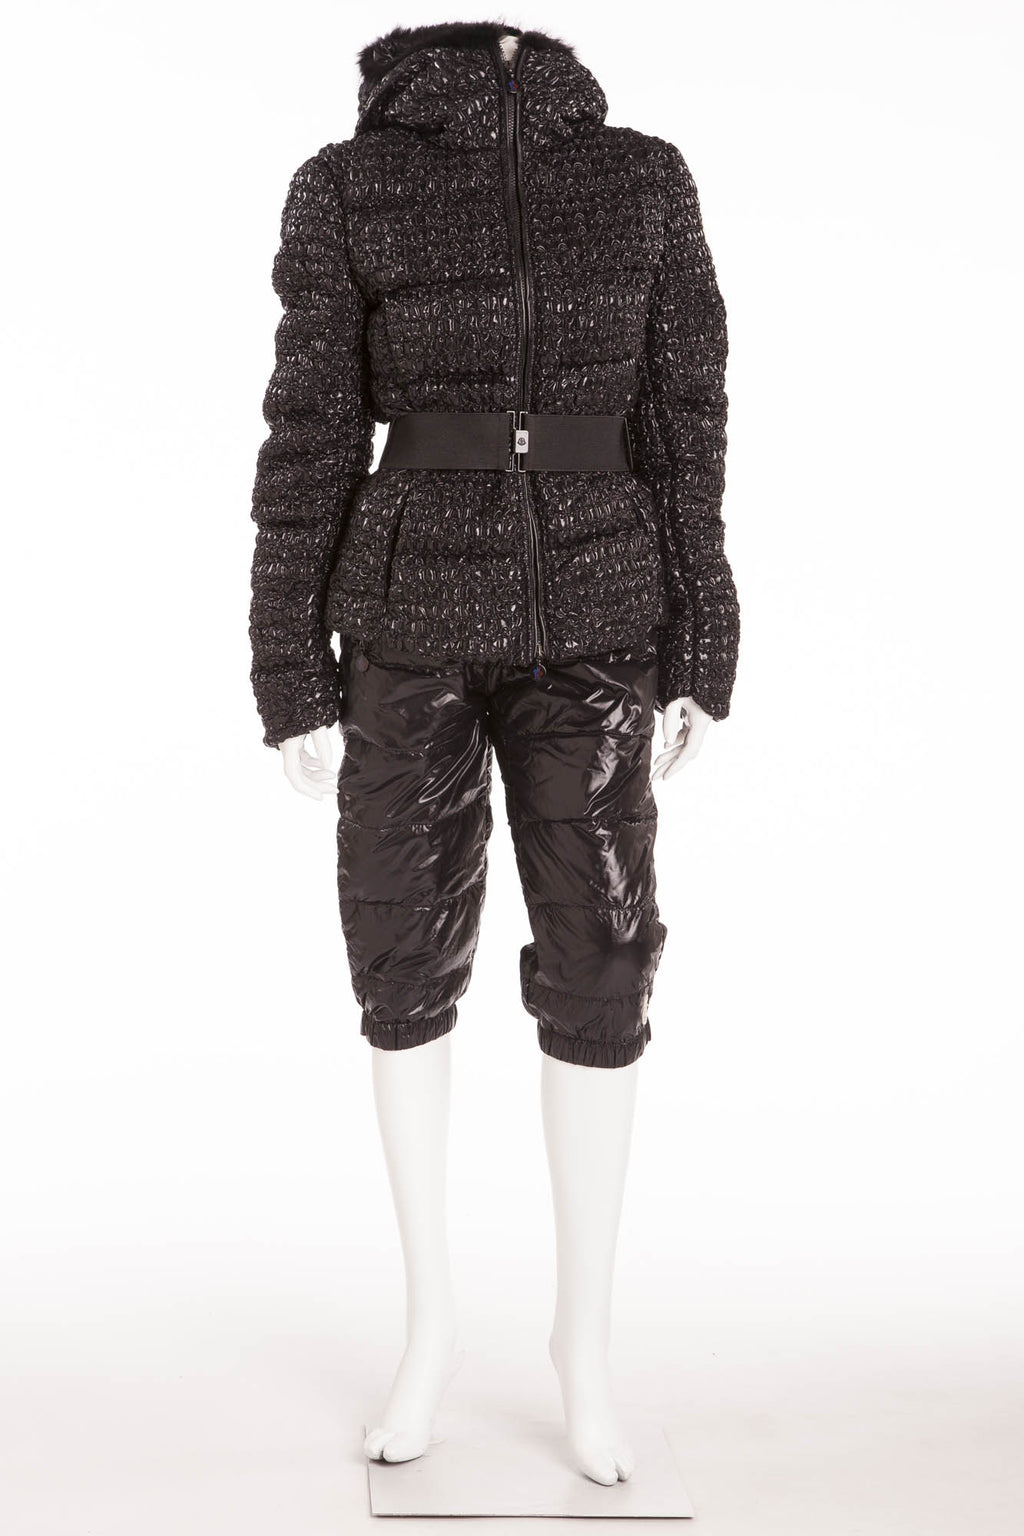 Moncler  - 3PC Black Puffy Jacket, Pants & Belt - 3 IT 42